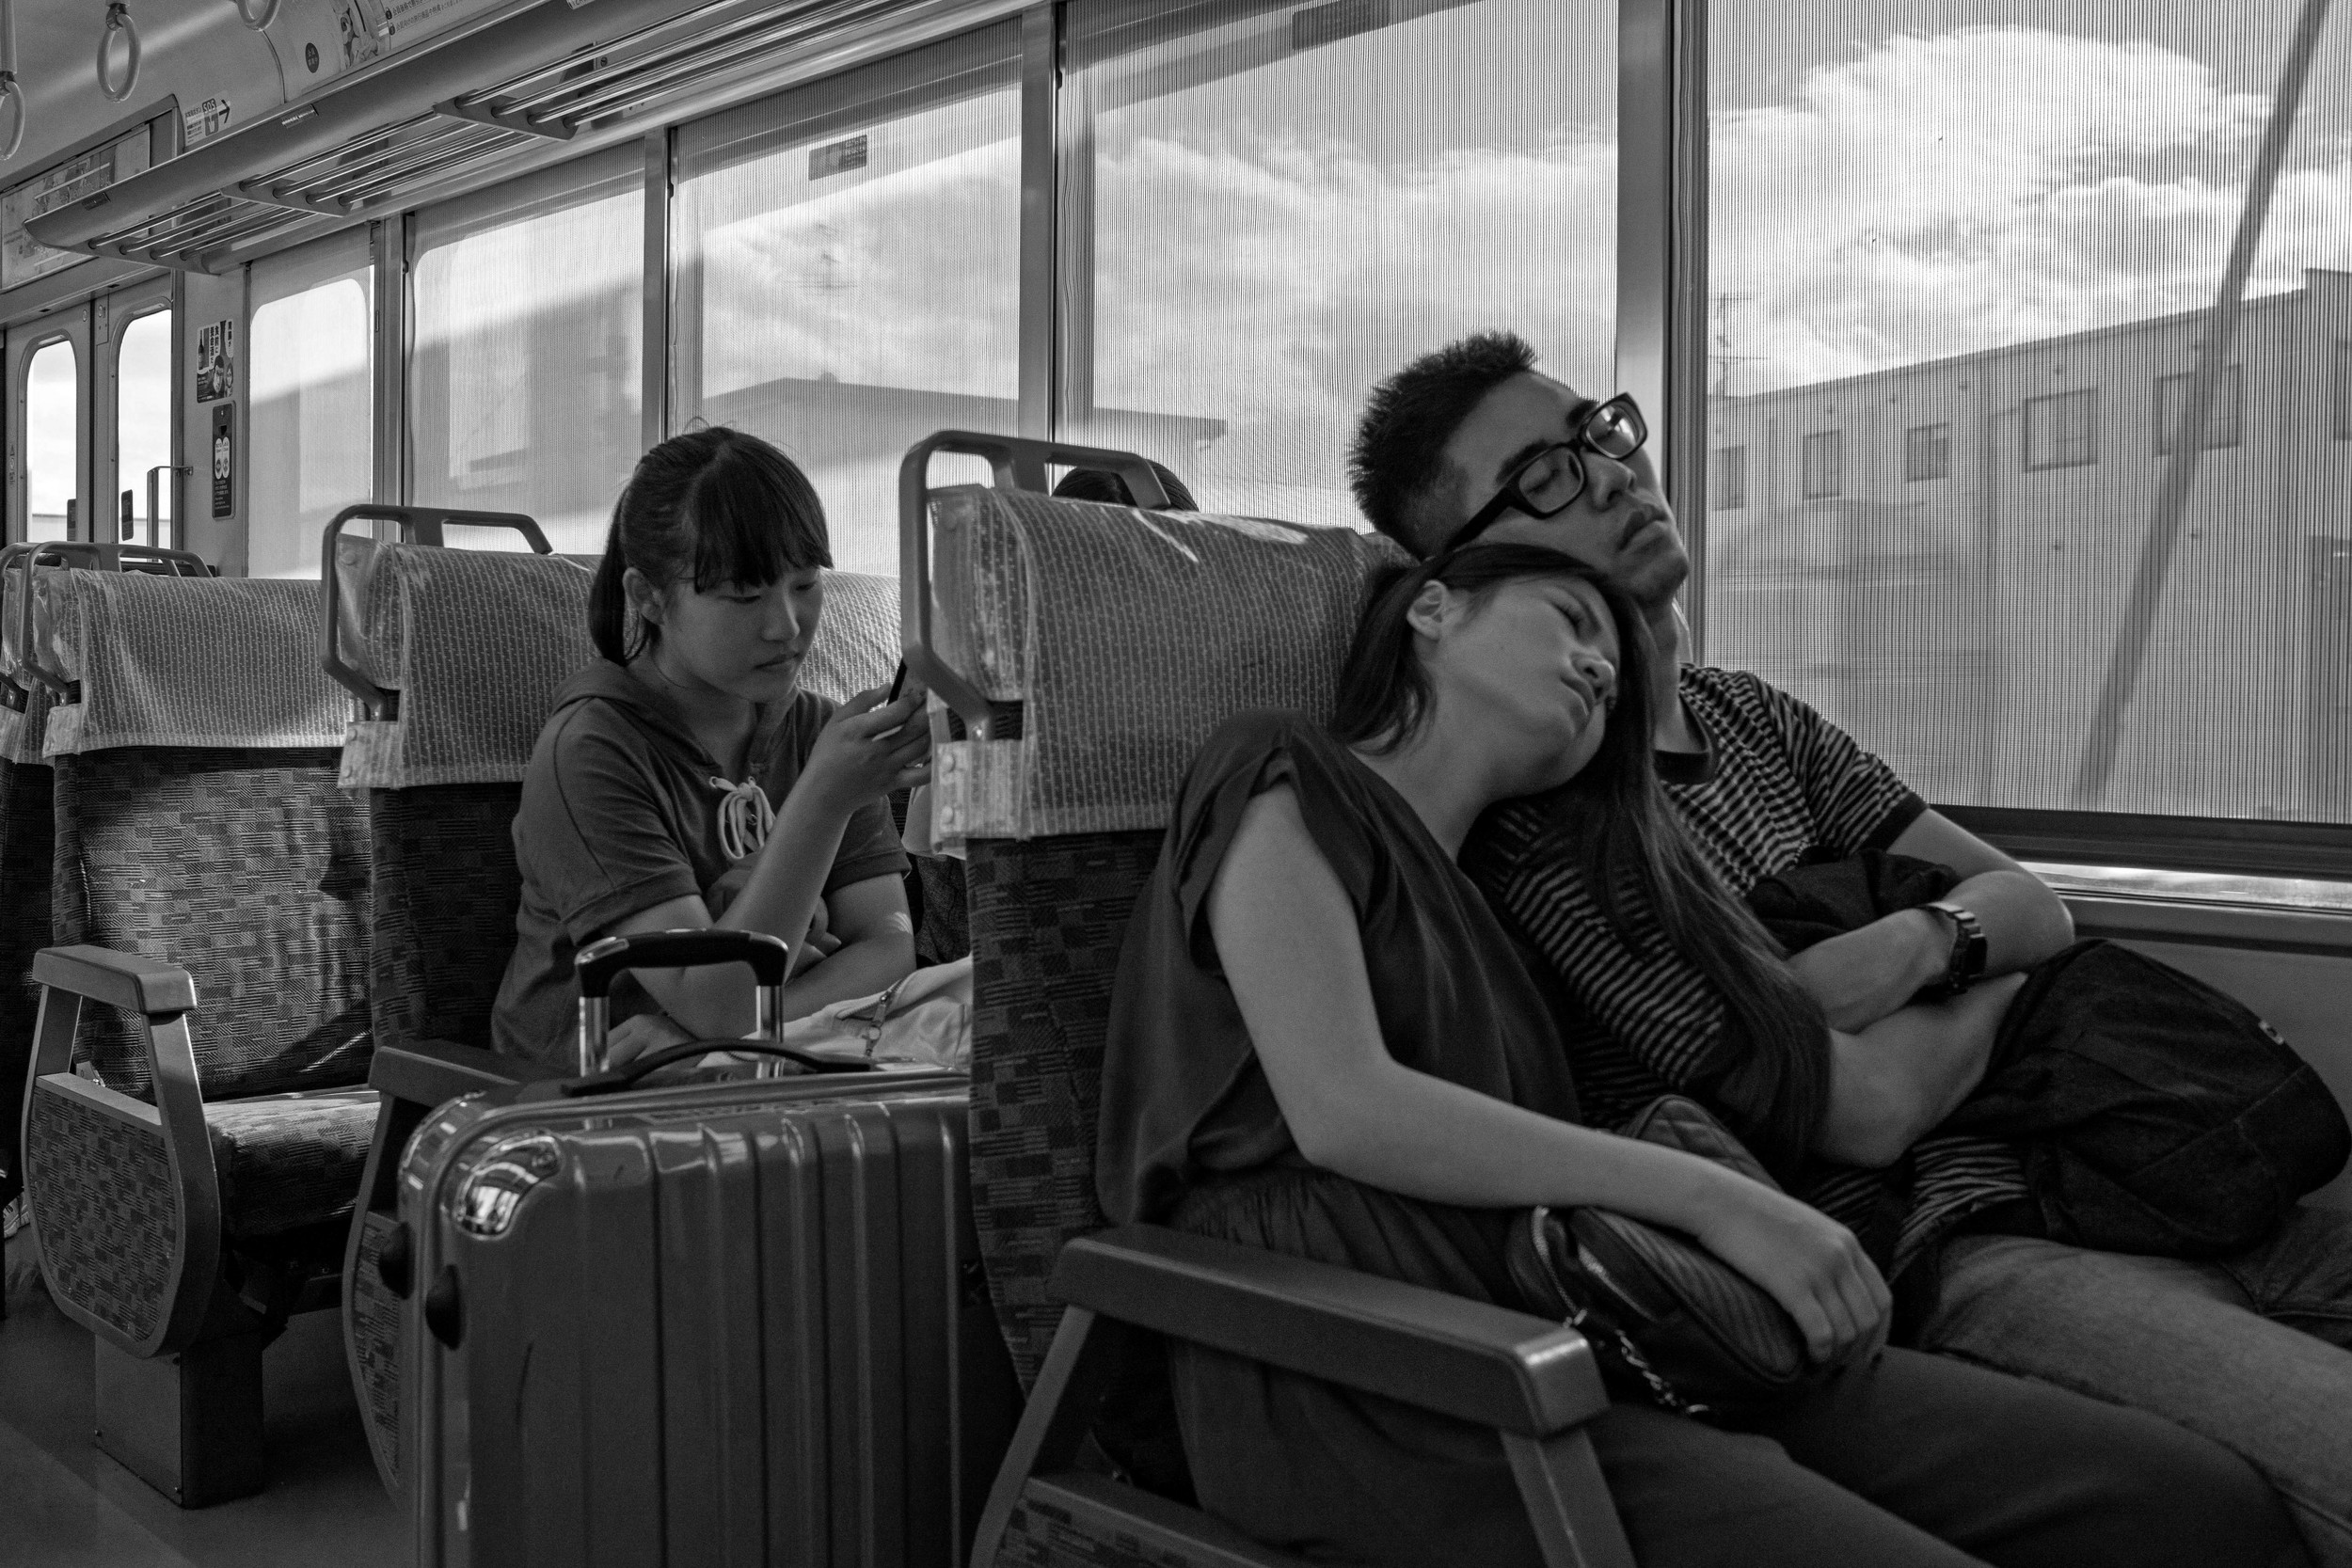 This was on a train from Nara to Kyoto. Obviously this one is more a matter of content than anything special photographically -- I might've been just as happy with a phone photo of the moment. I always feel self-conscious taking shots like this. That raises the question: Is it creepier to overtly grab shots like this with a big lens like the Distagon, or to be stealthy about it with something smaller? Shutter: 1/250th, f/6.3, ISO: 500.